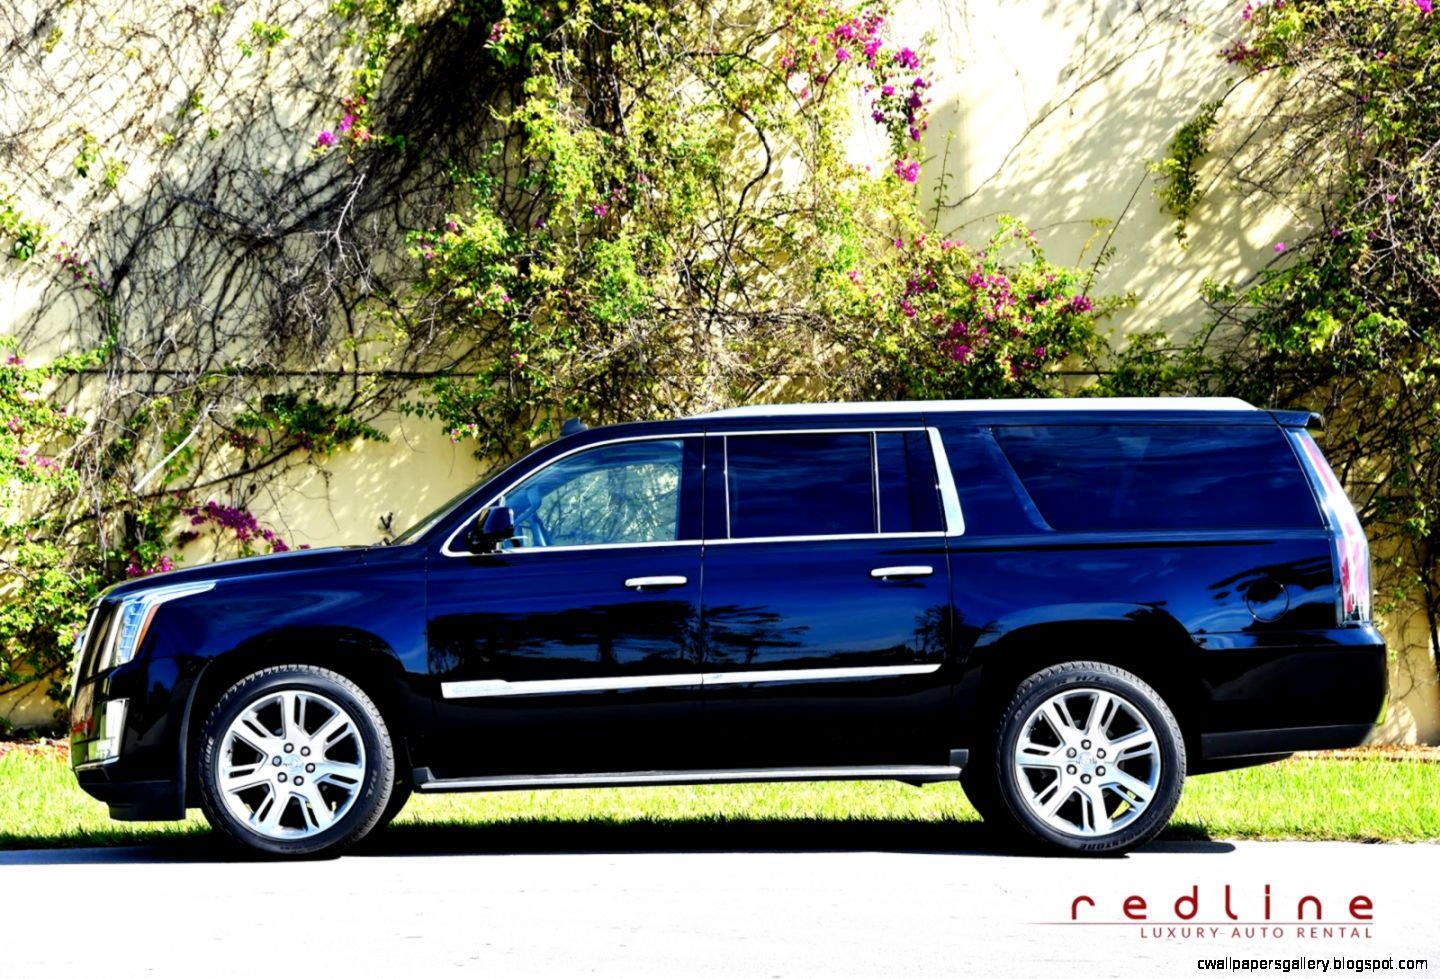 Reasons for Renting American Luxury Cars  Reasons for Renting